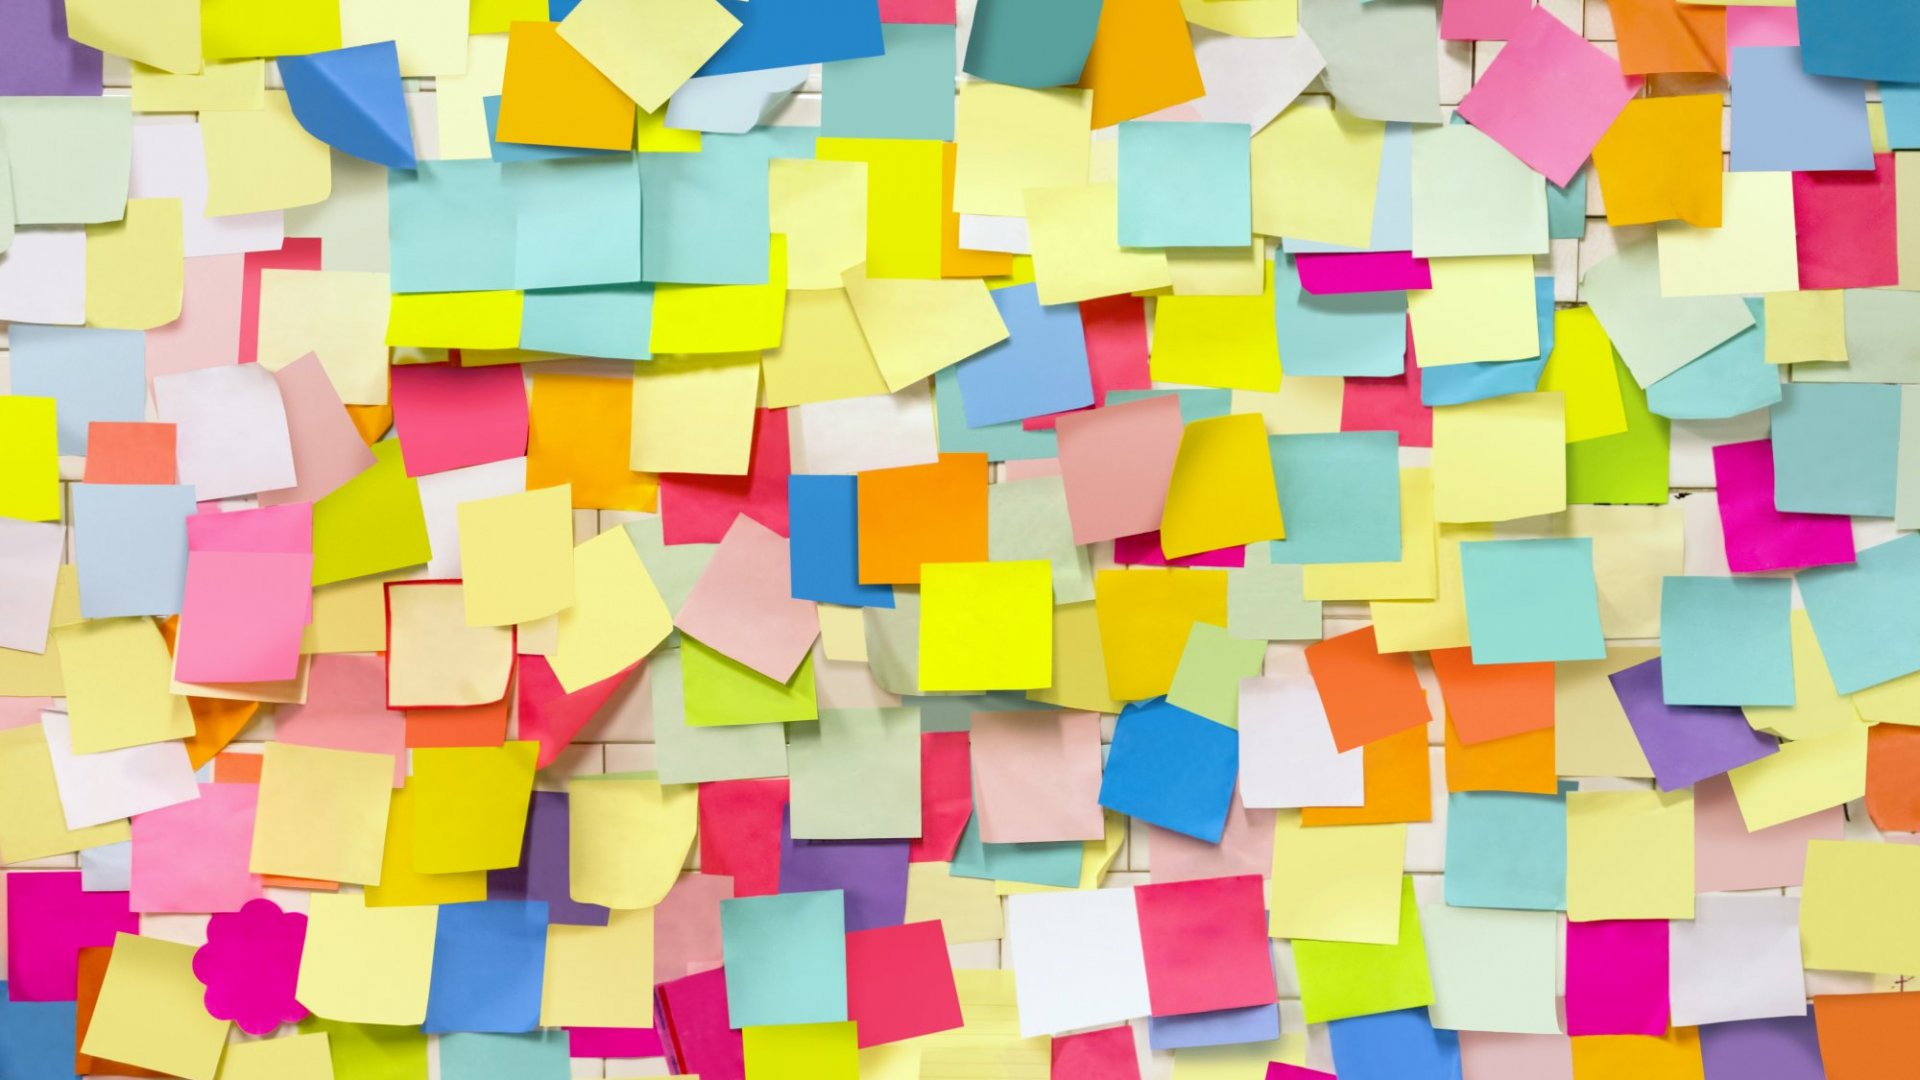 Prioritize Your Best Ideas With One Powerful Tool